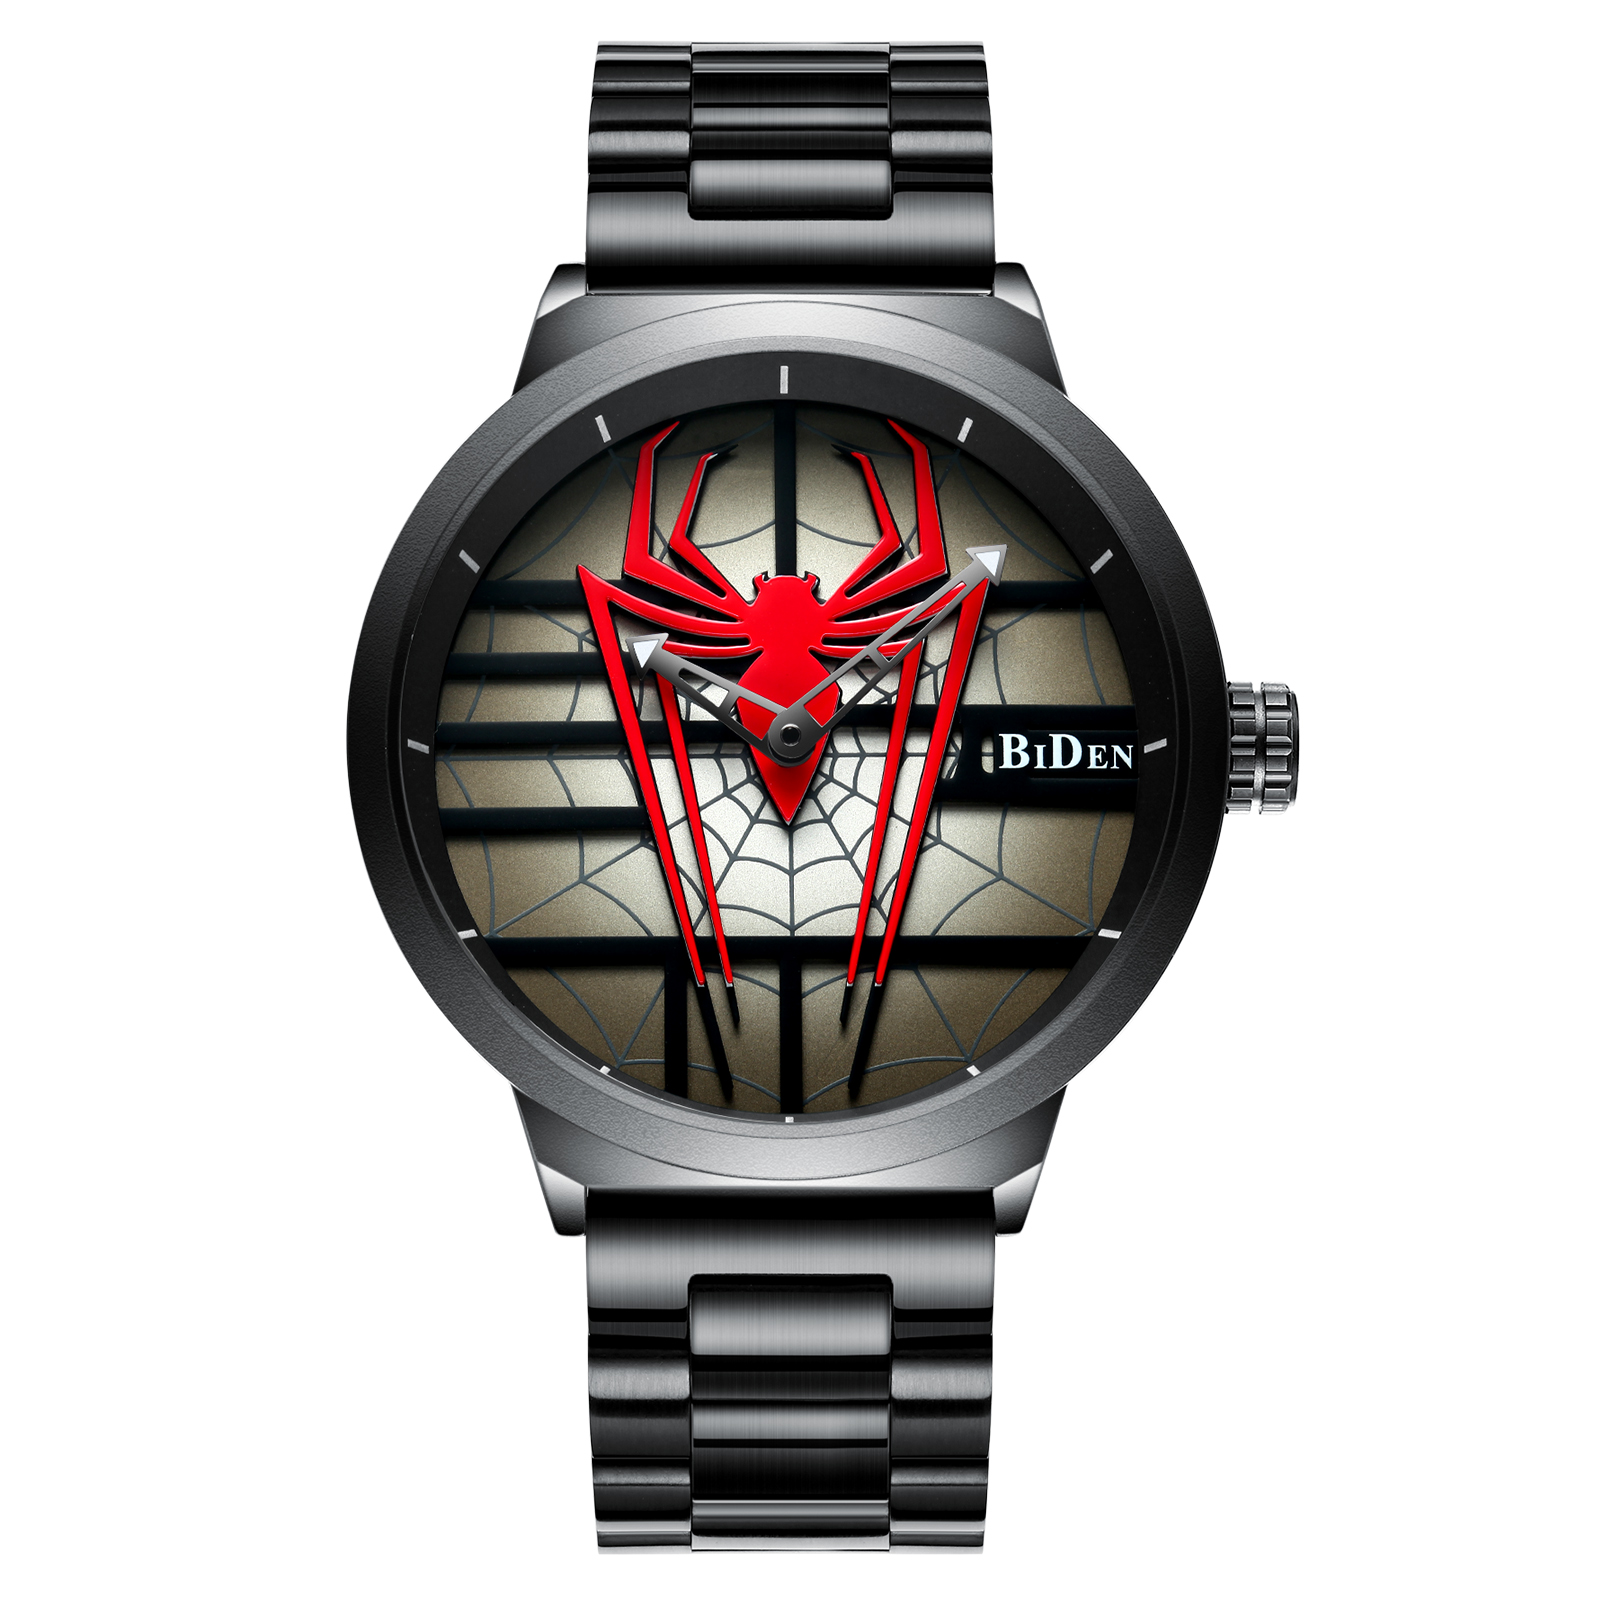 BIDEN Men's Quartz Watch Fashion Spider Dial Cool Men's Personality Quartz Watch Luxury Brand Japan Sports Unique Watch Spider-M цена и фото